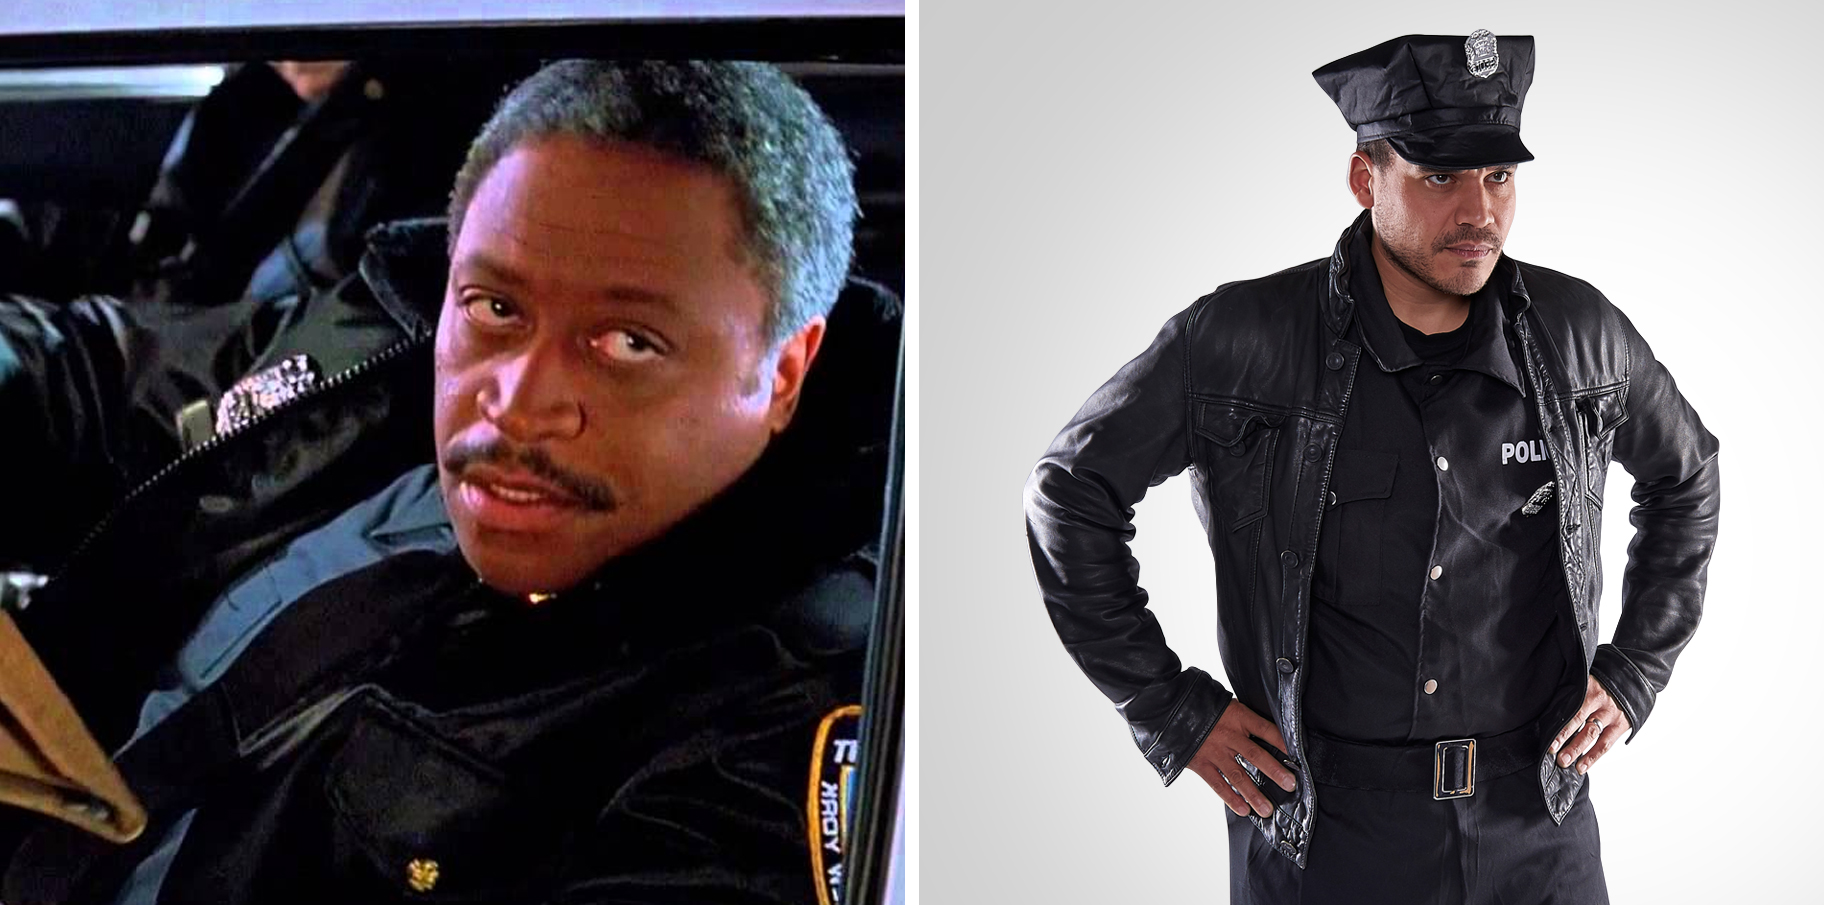 Mike as the police officer